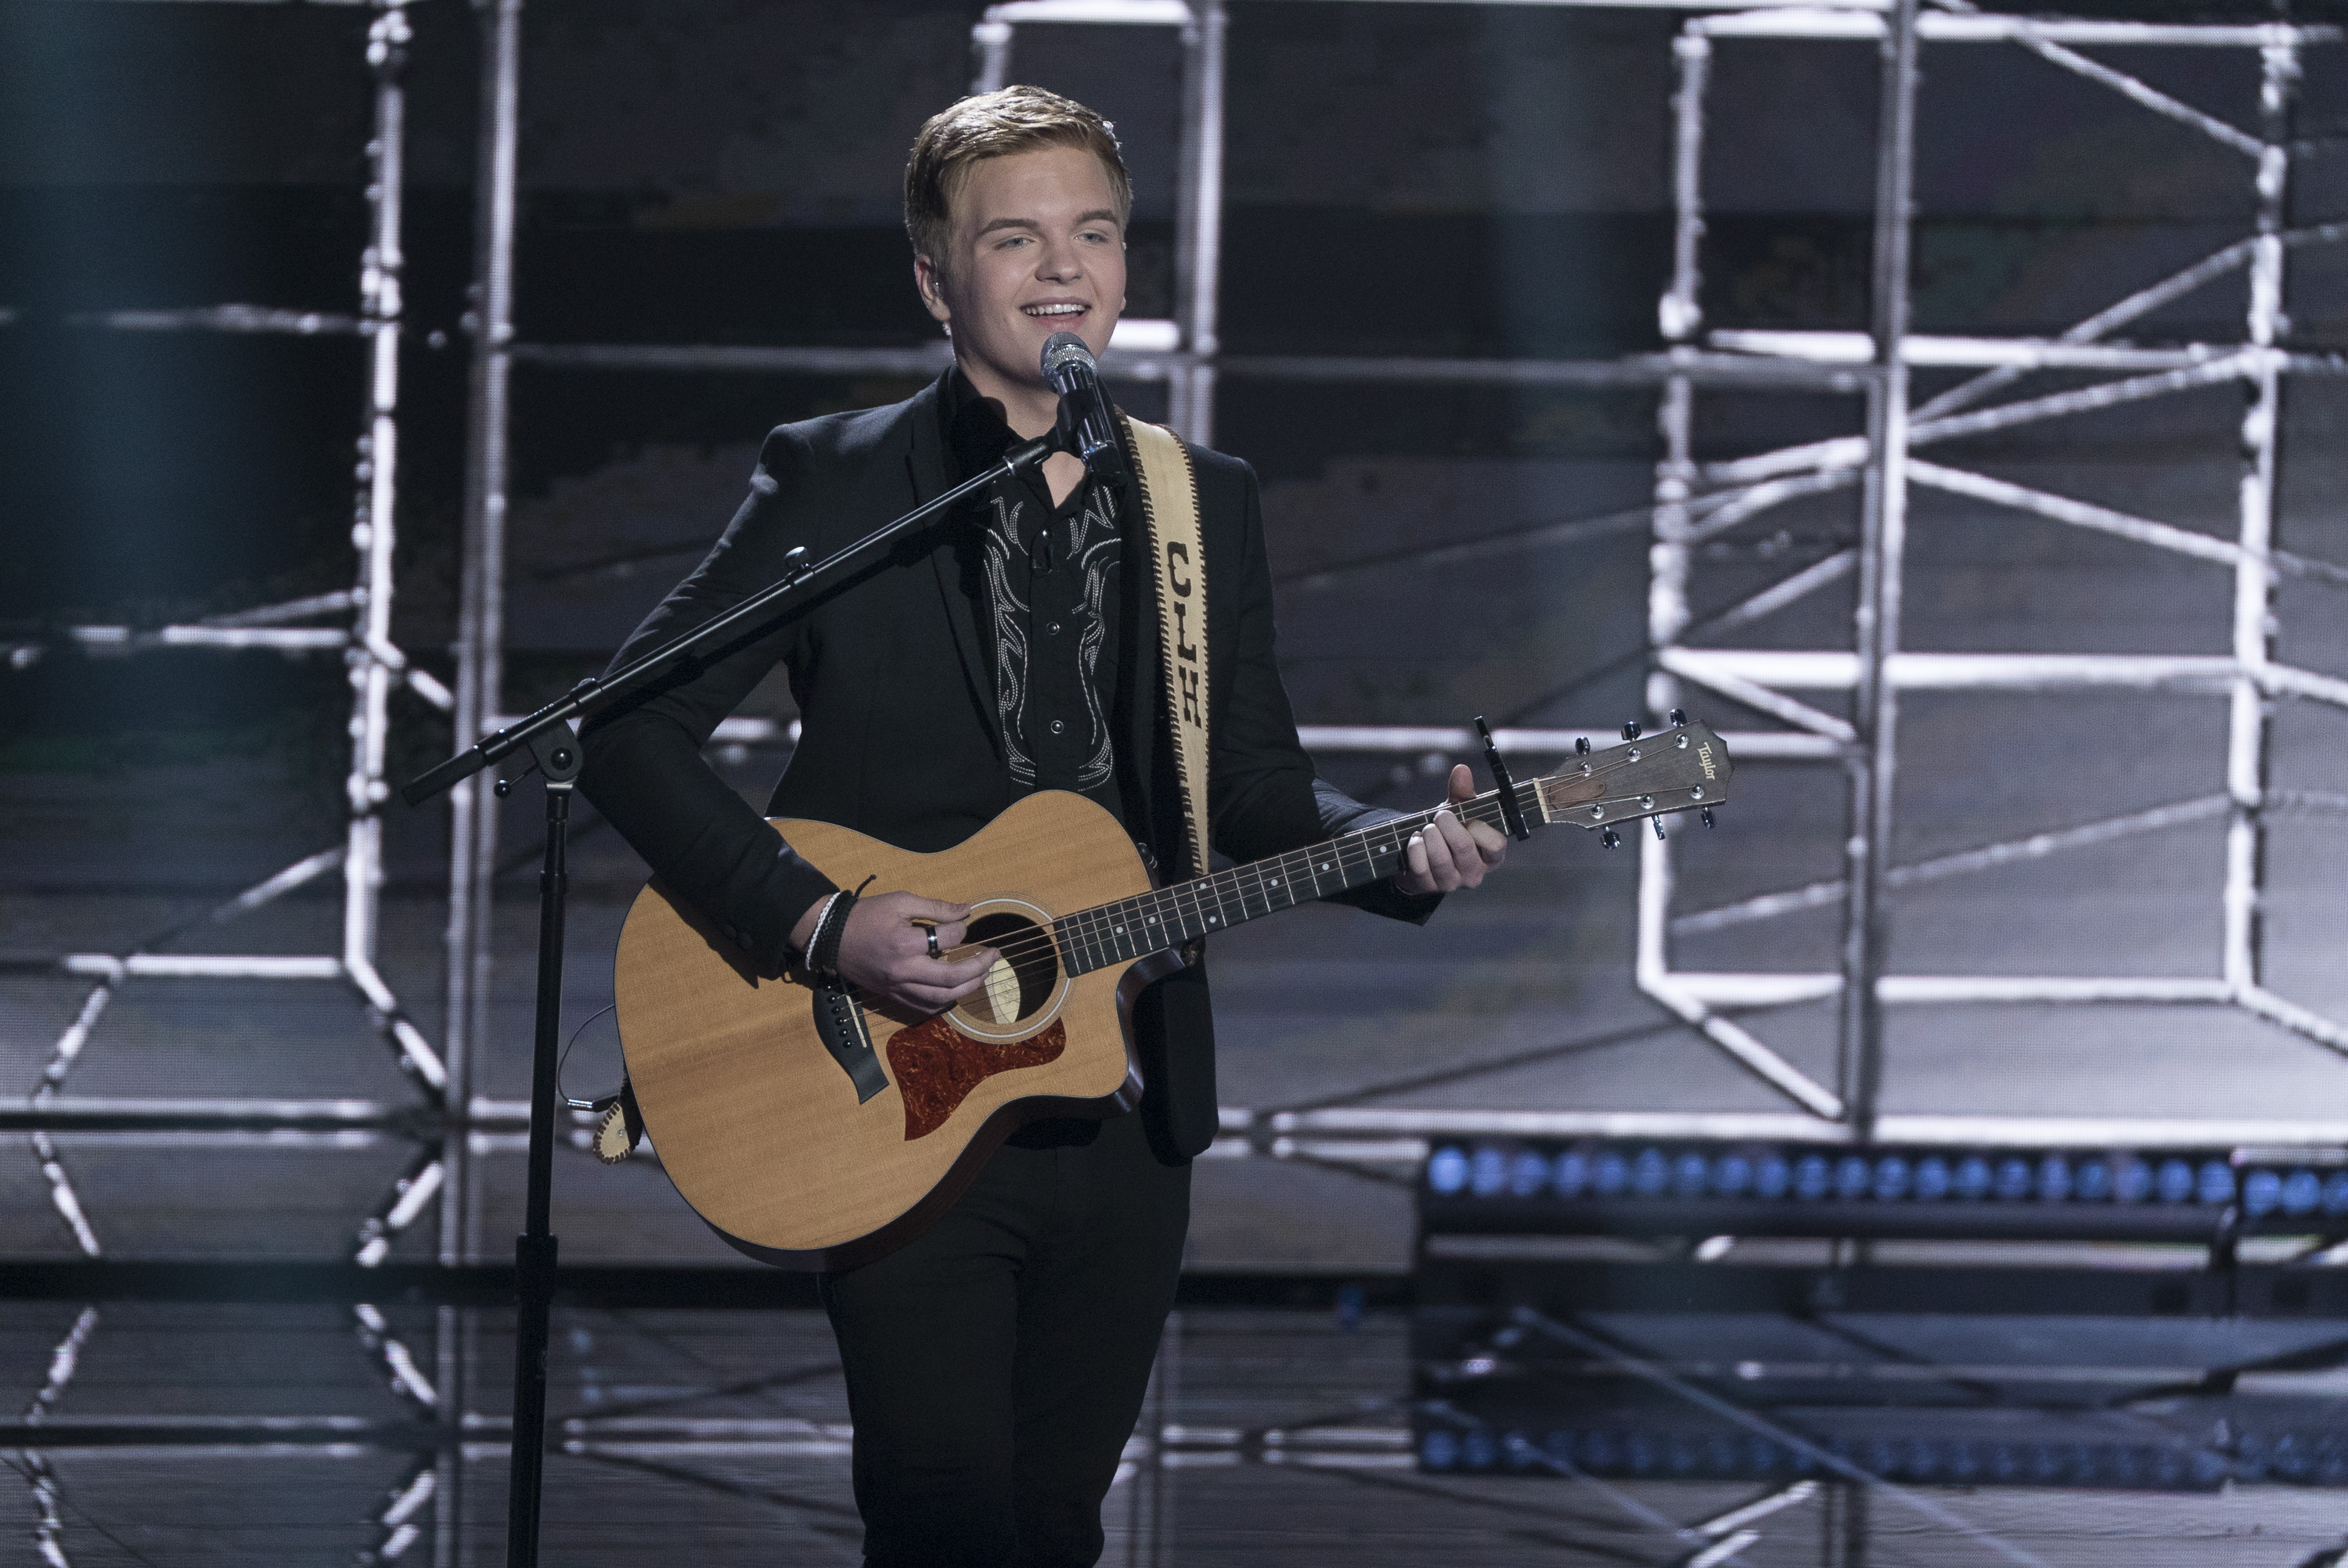 Must see moments from American Idol season finale part 1